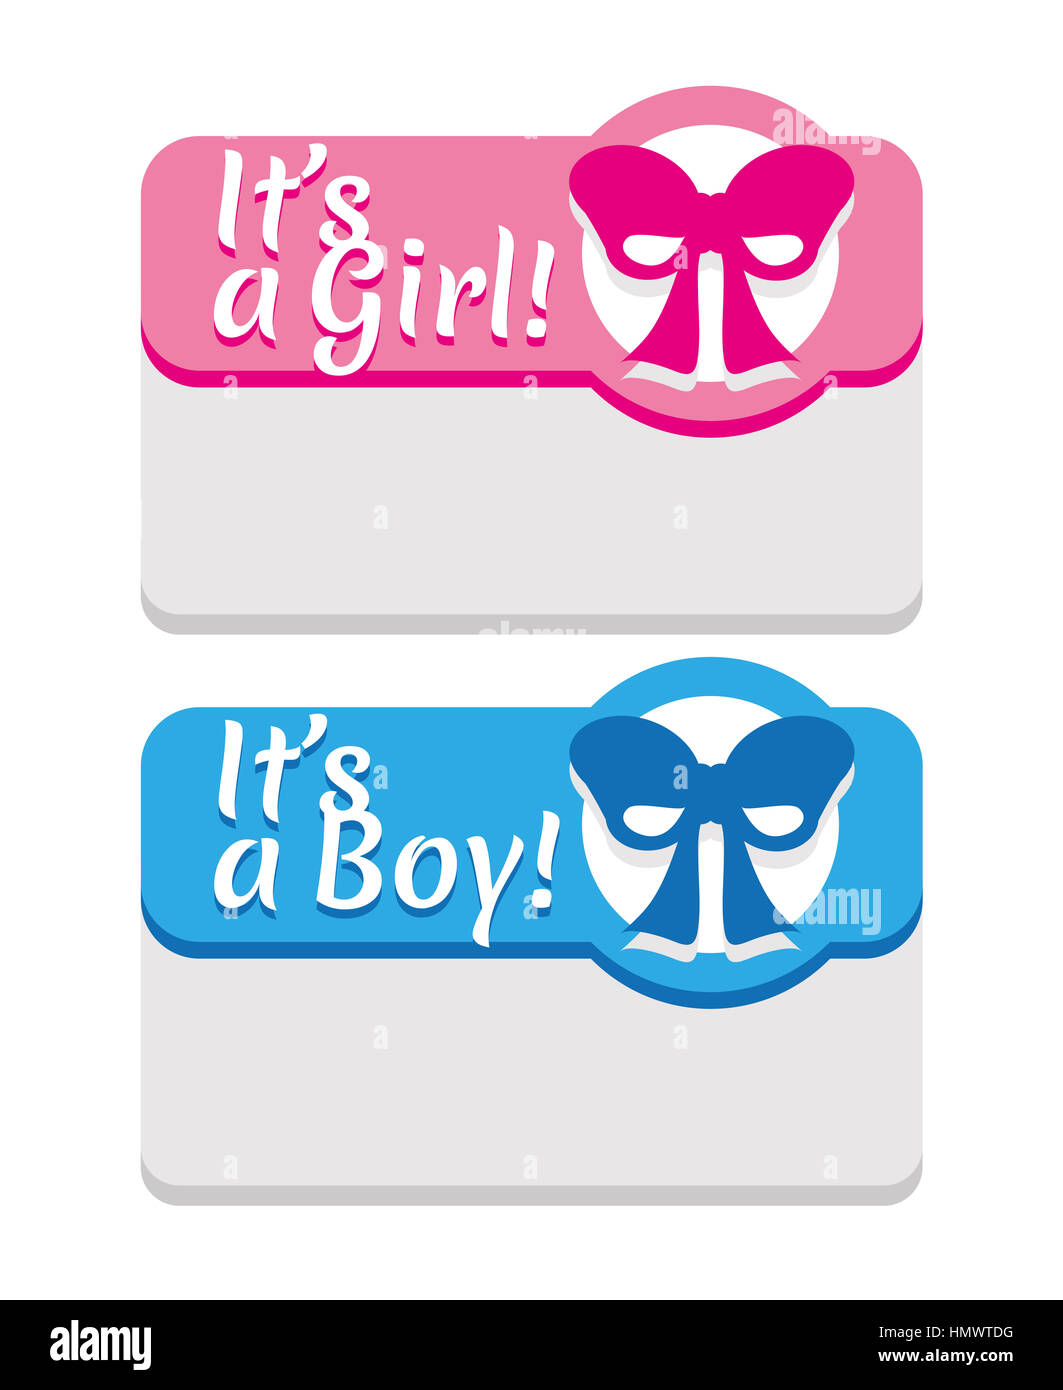 Newborn announcement its a boy girl card featuring a stylized newborn announcement its a boy girl card featuring a stylized blue fuchsia ribbon for baby shower invitations greeting cards or present tags kristyandbryce Images